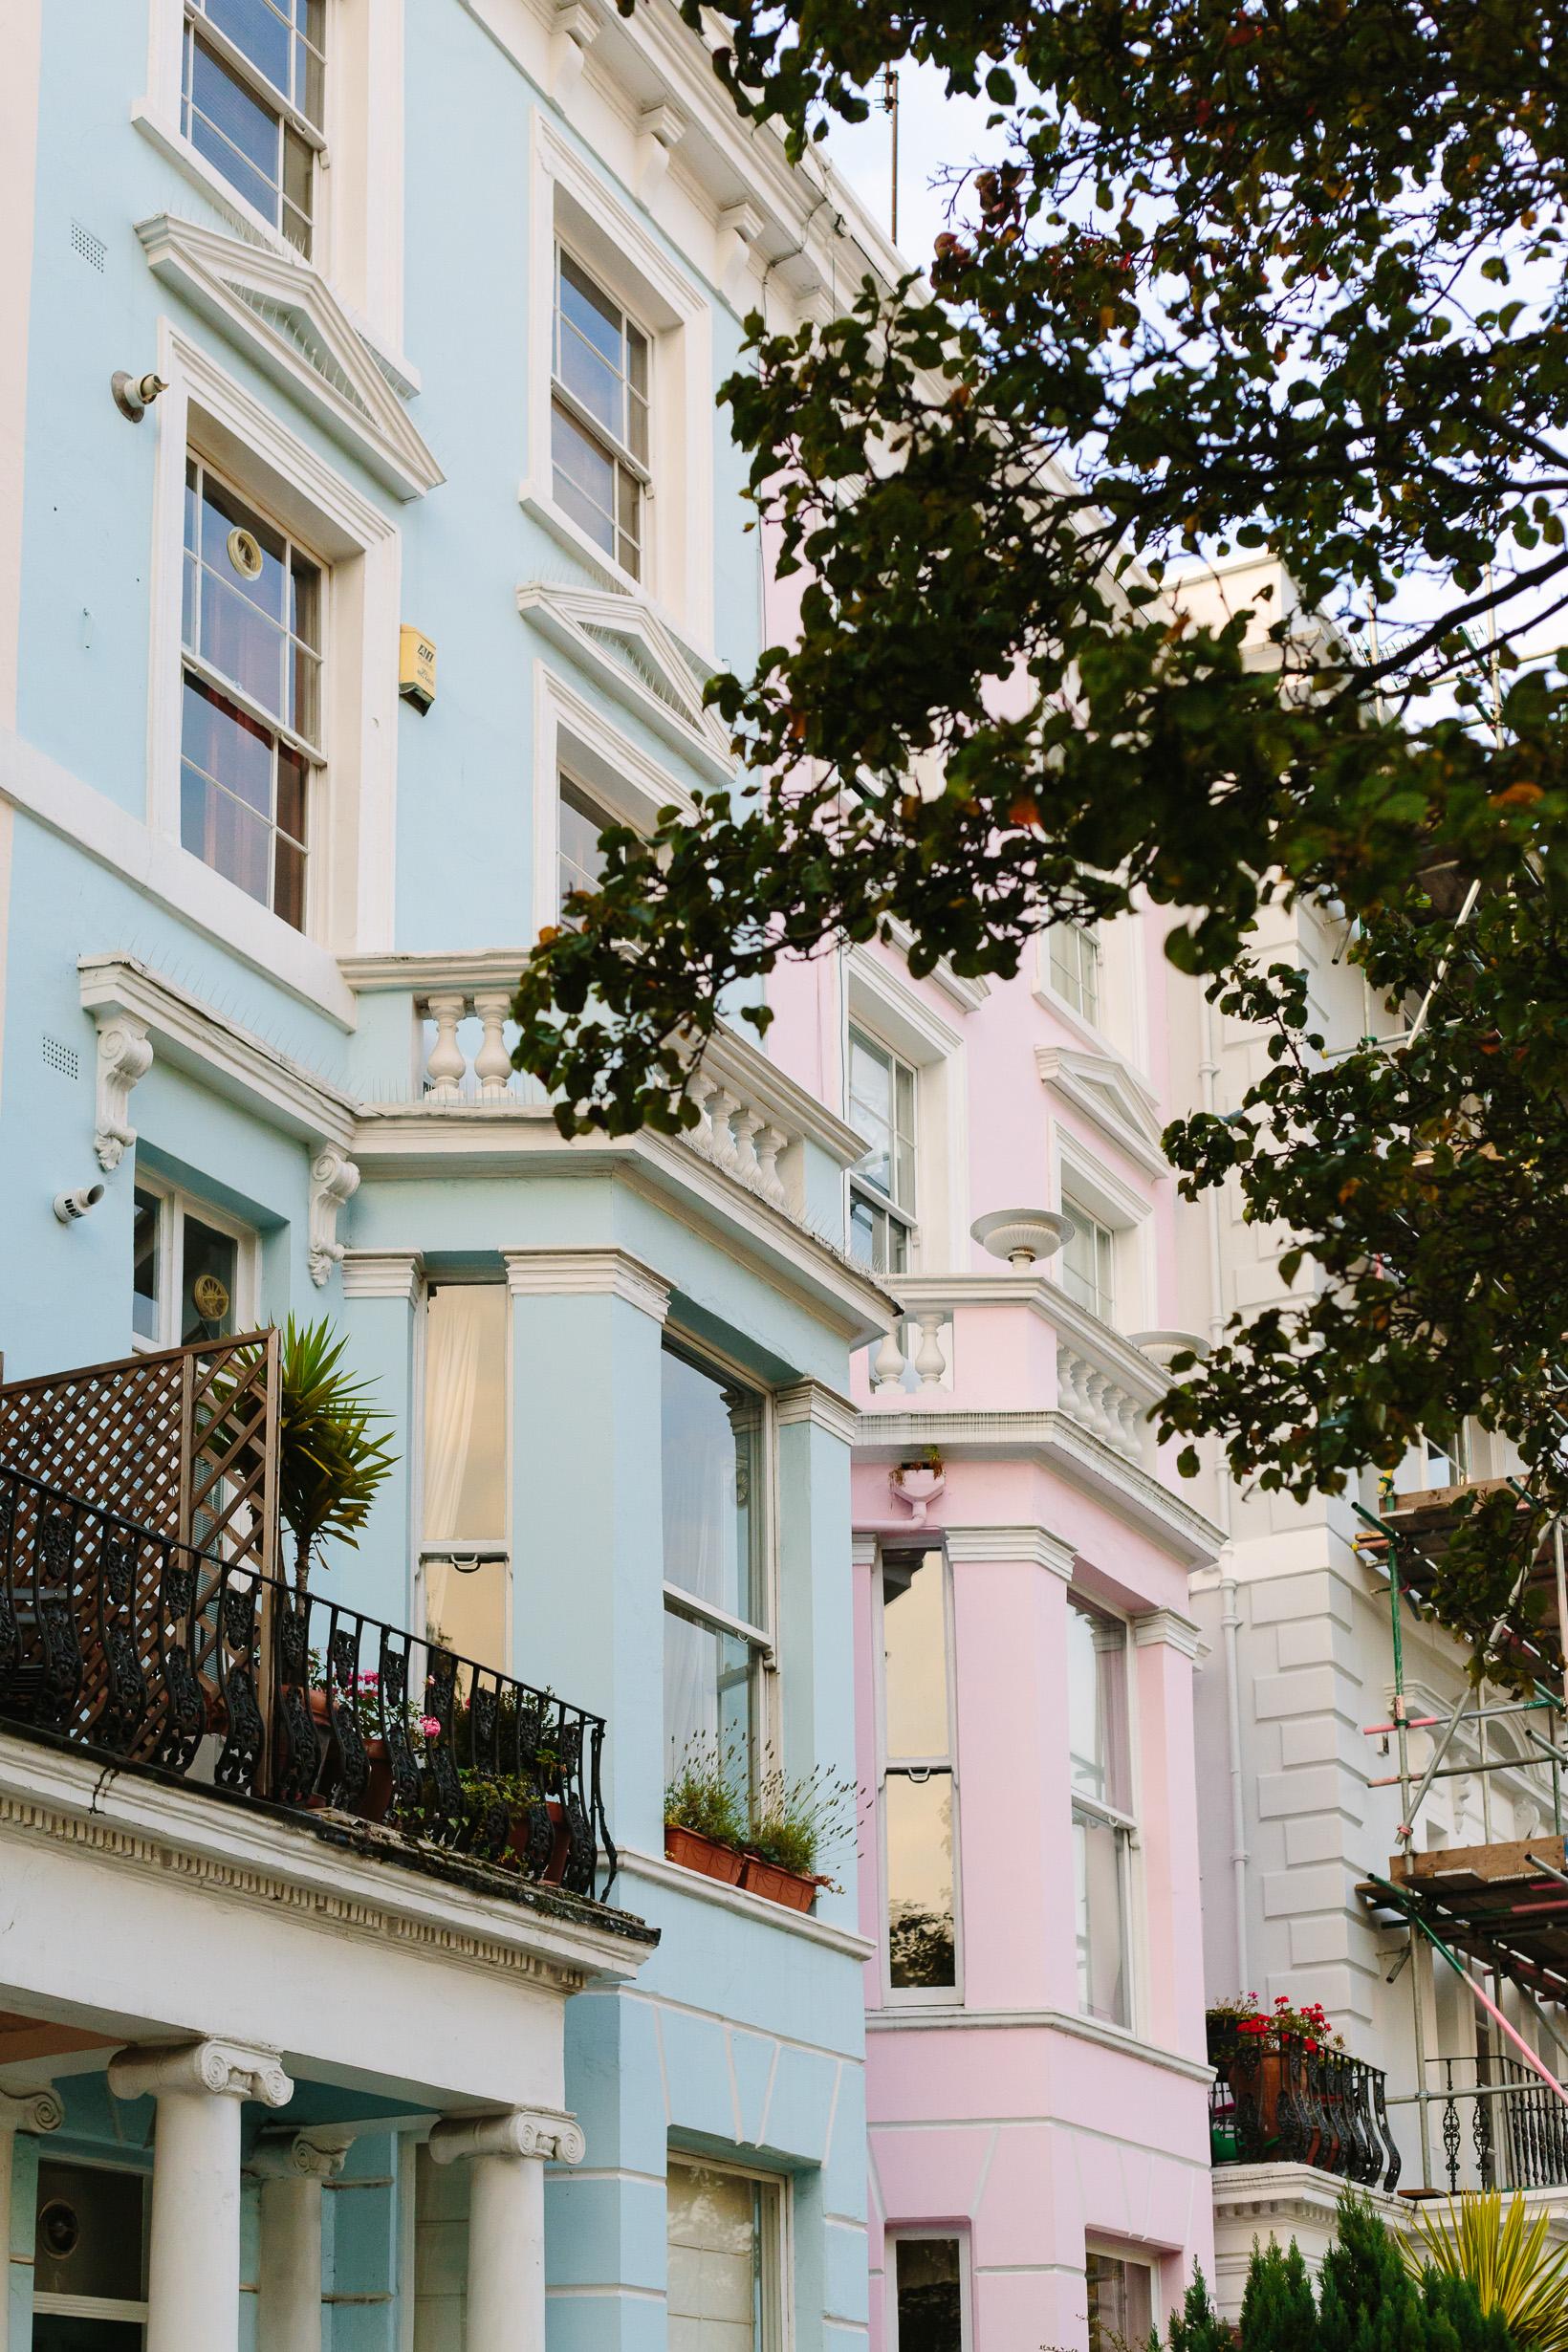 colorful-houses-in-notting-hill-4717